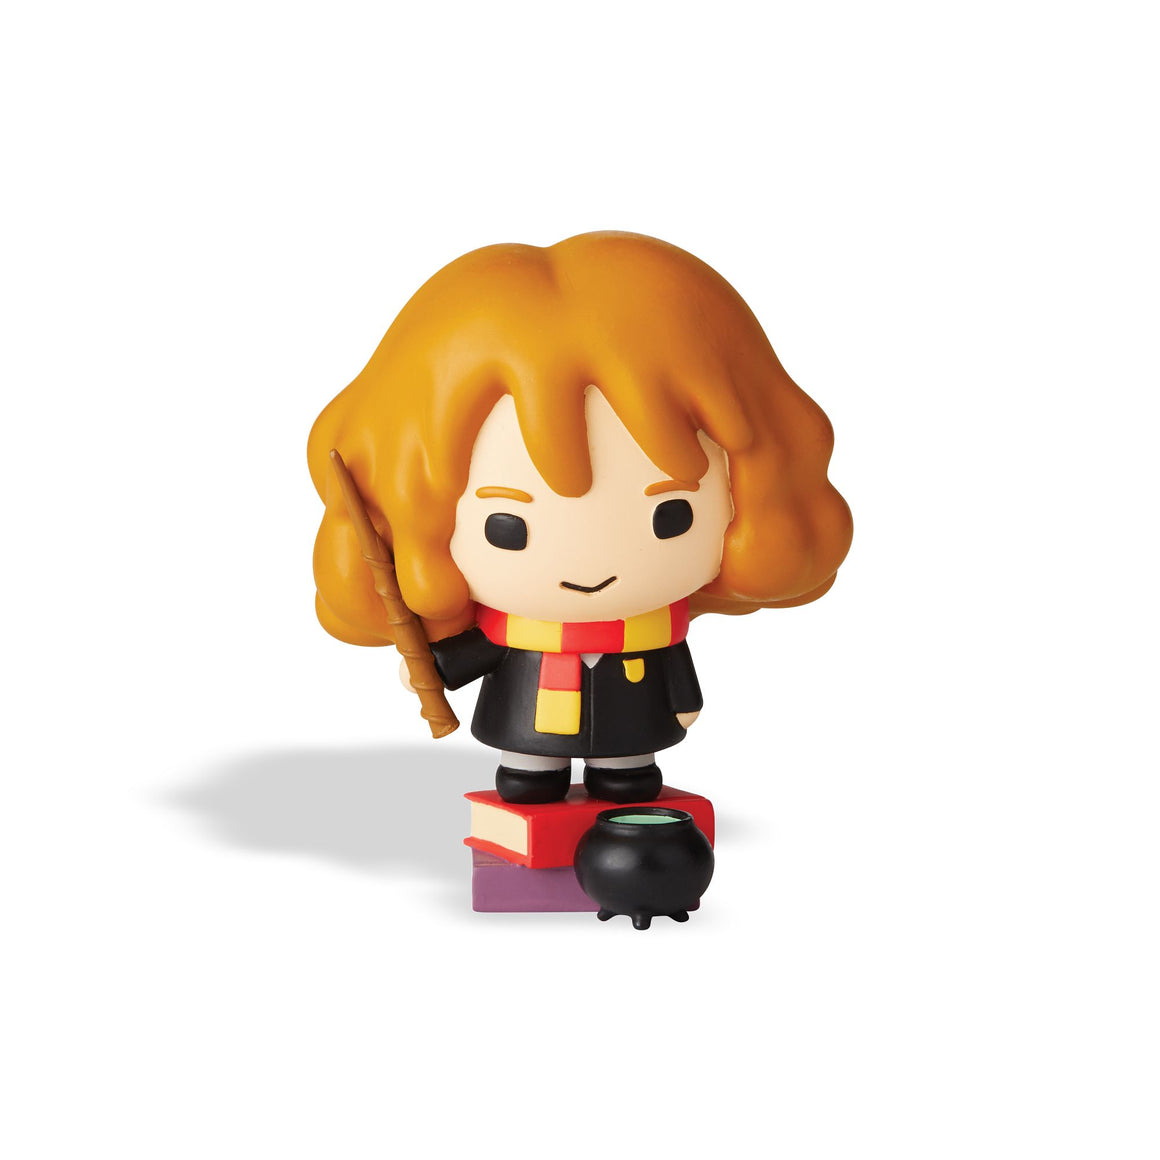 Hermione Charm Figurine - The Wizarding World of Harry Potter